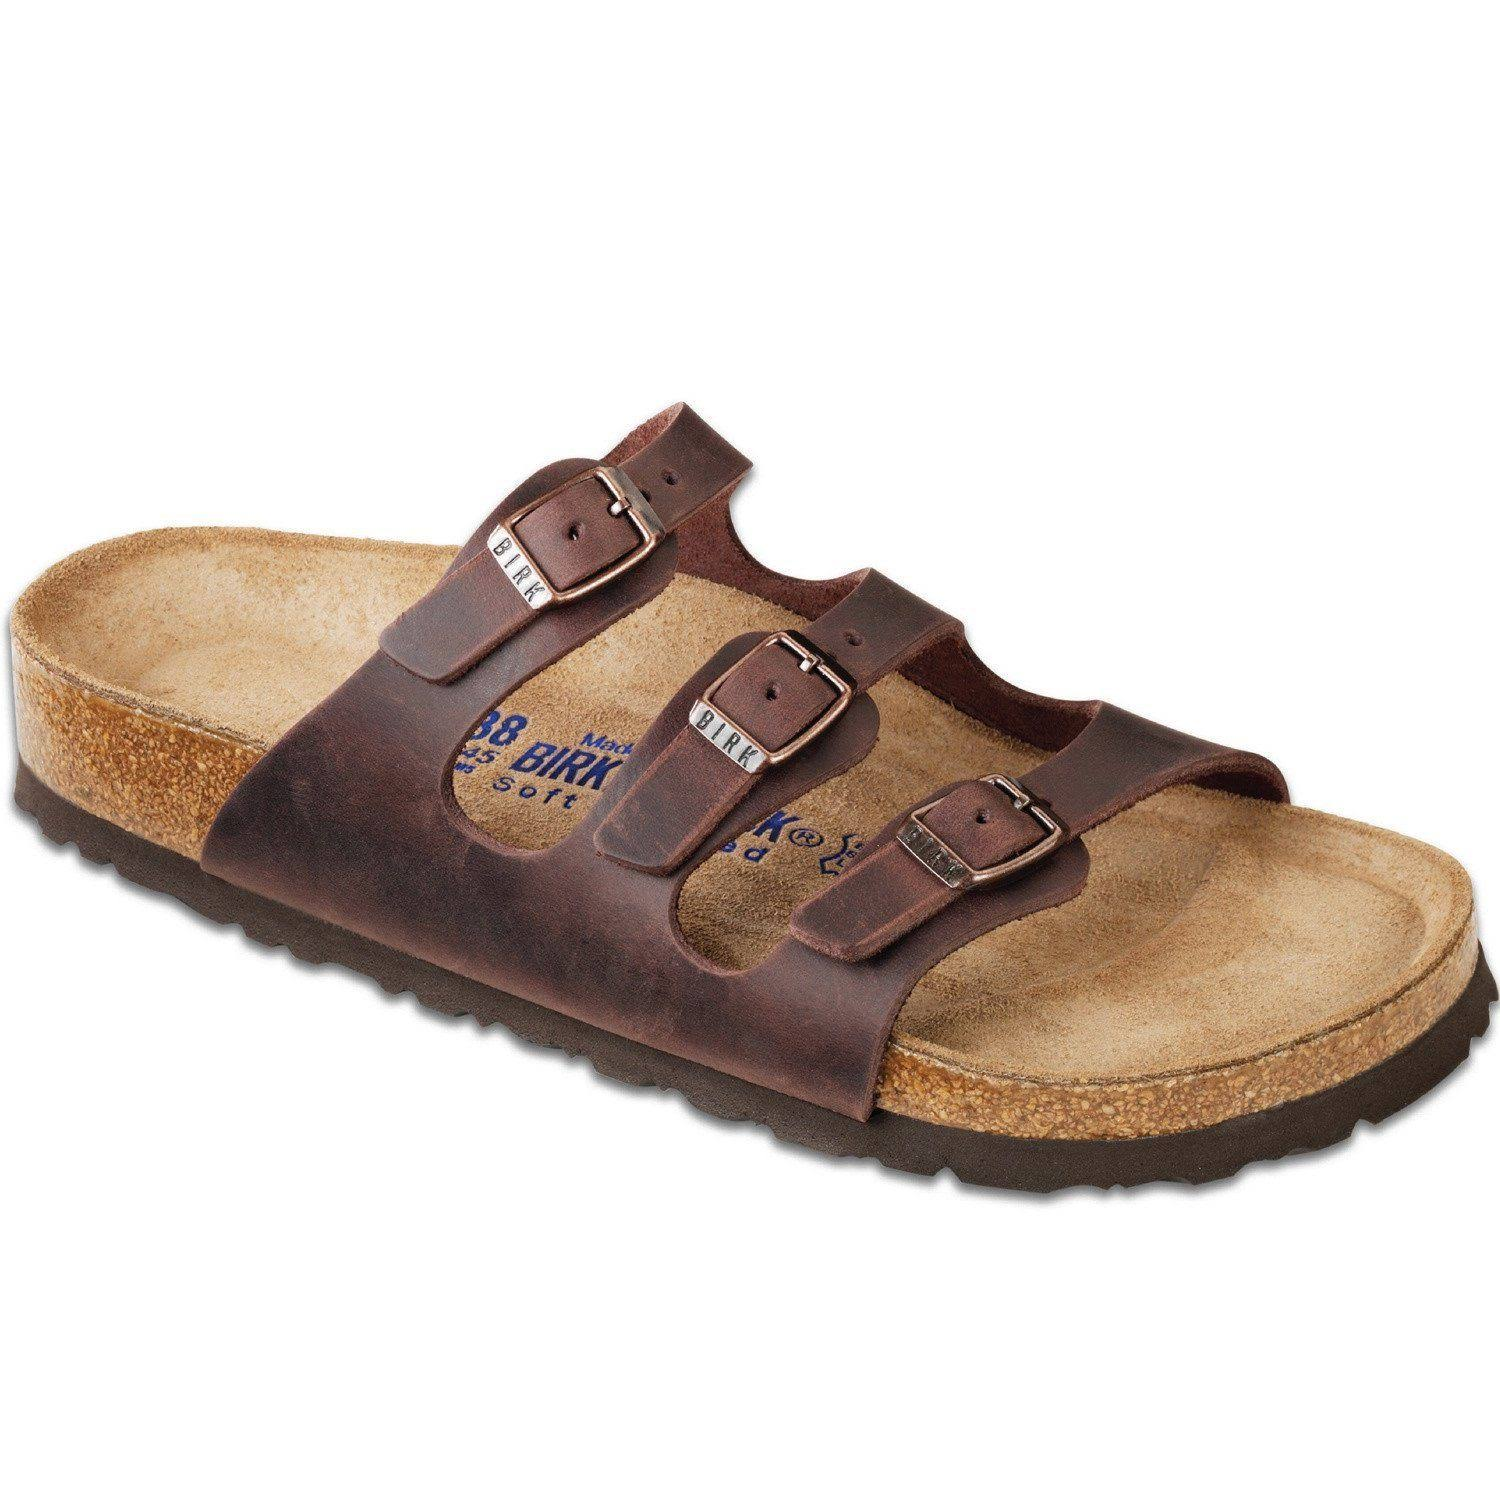 Birkenstock Women's Florida Soft Footbed Sandal - Brown, 7 US